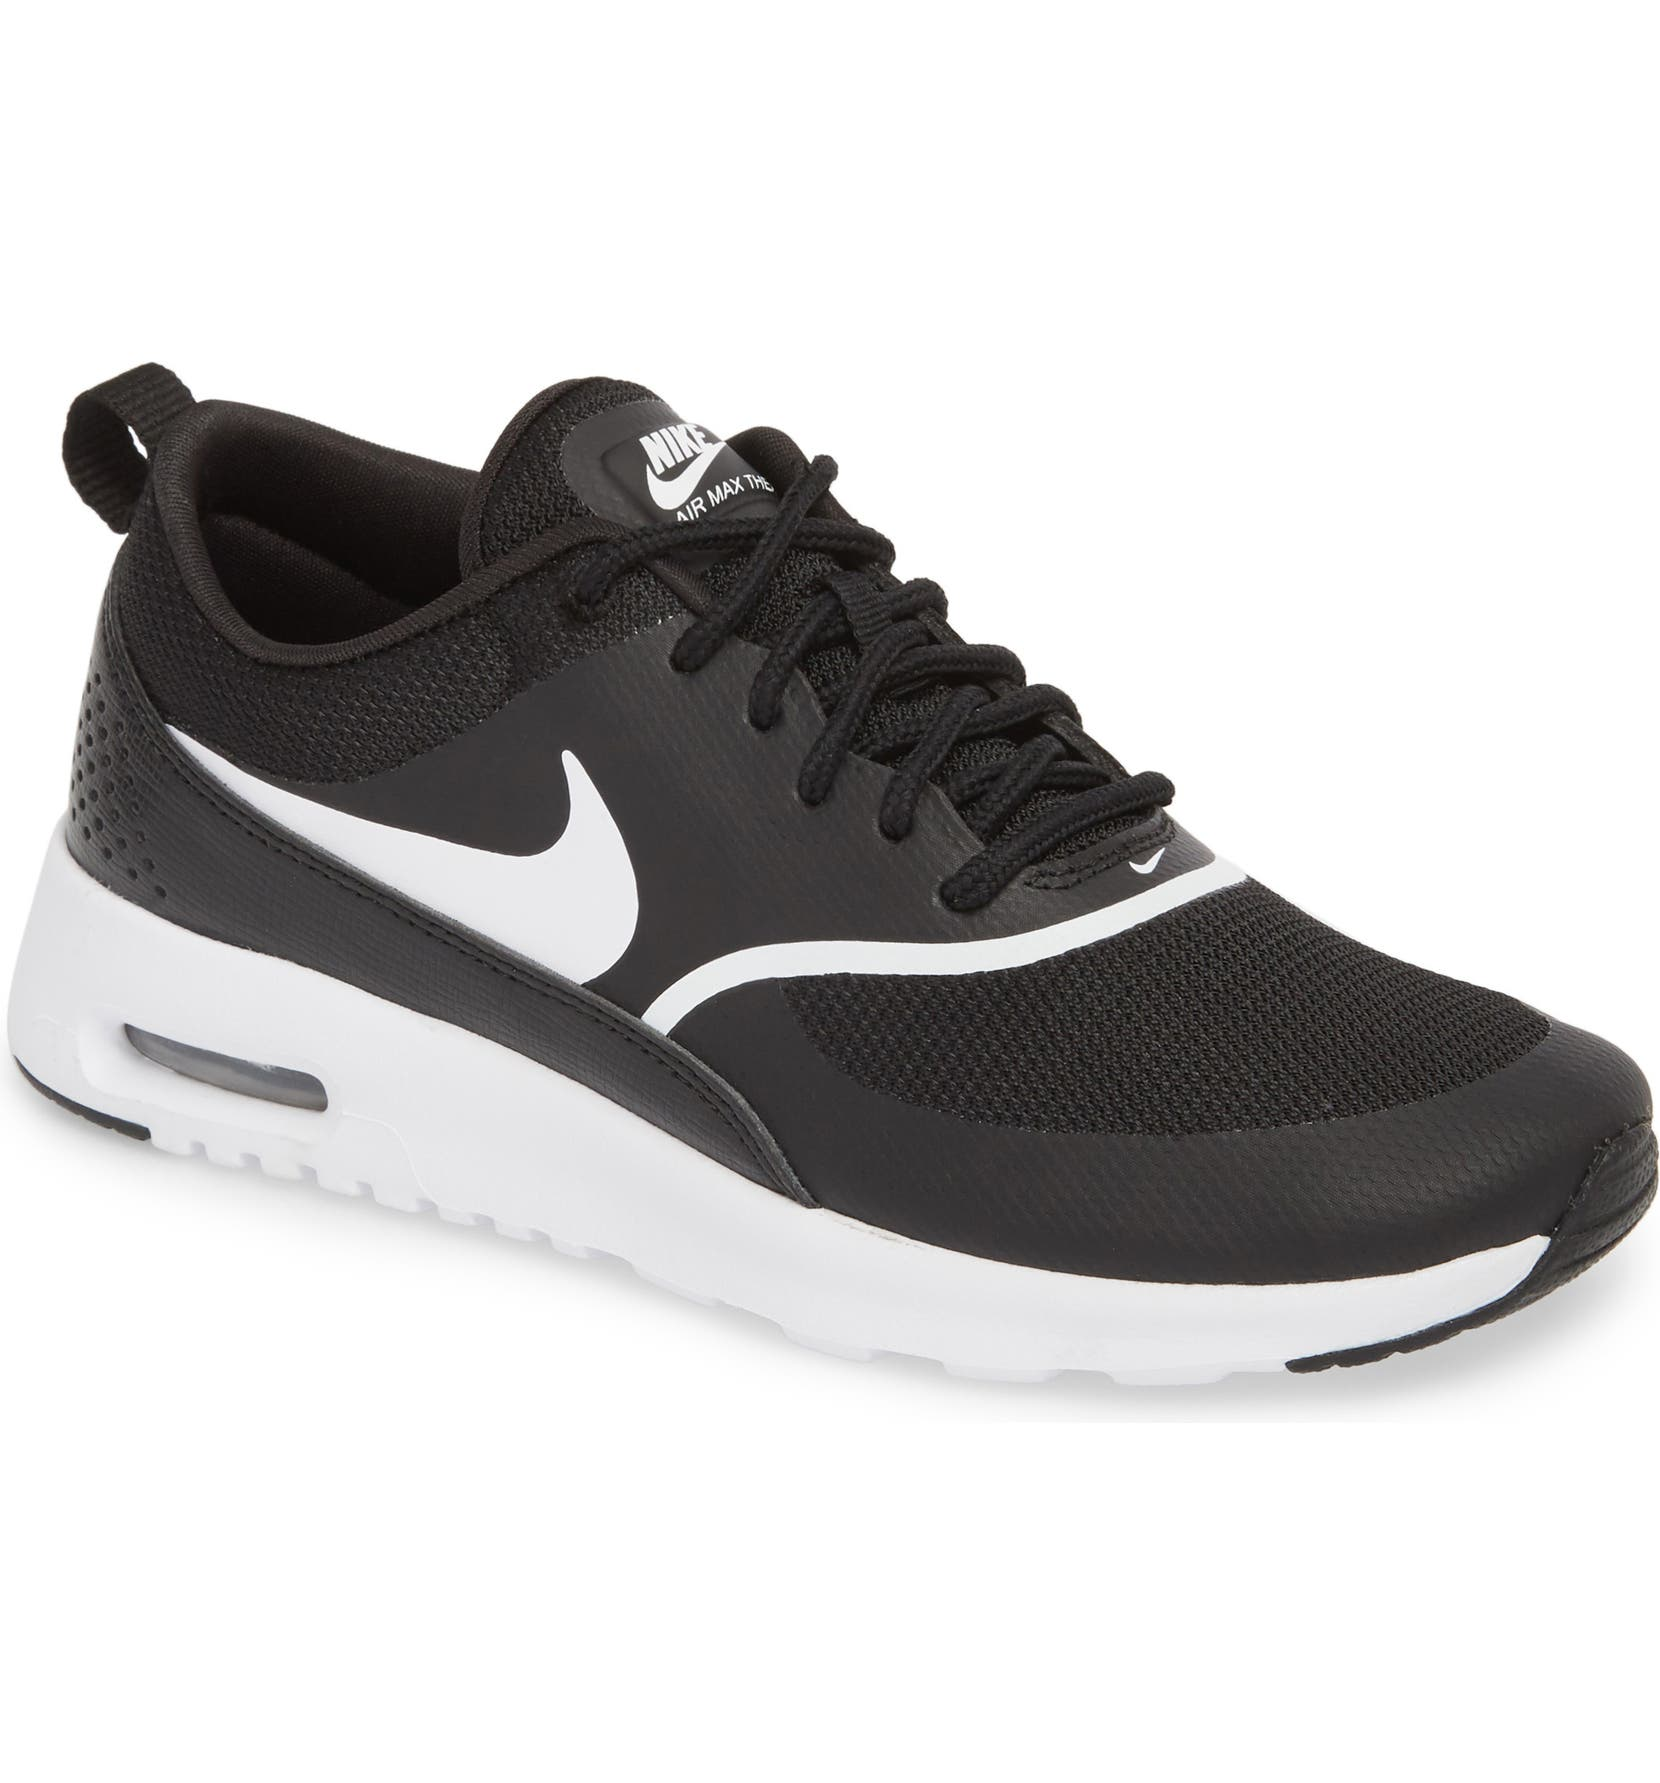 low cost 652ab 01fbc Nike Air Max Thea Sneaker (Women)  Nordstrom